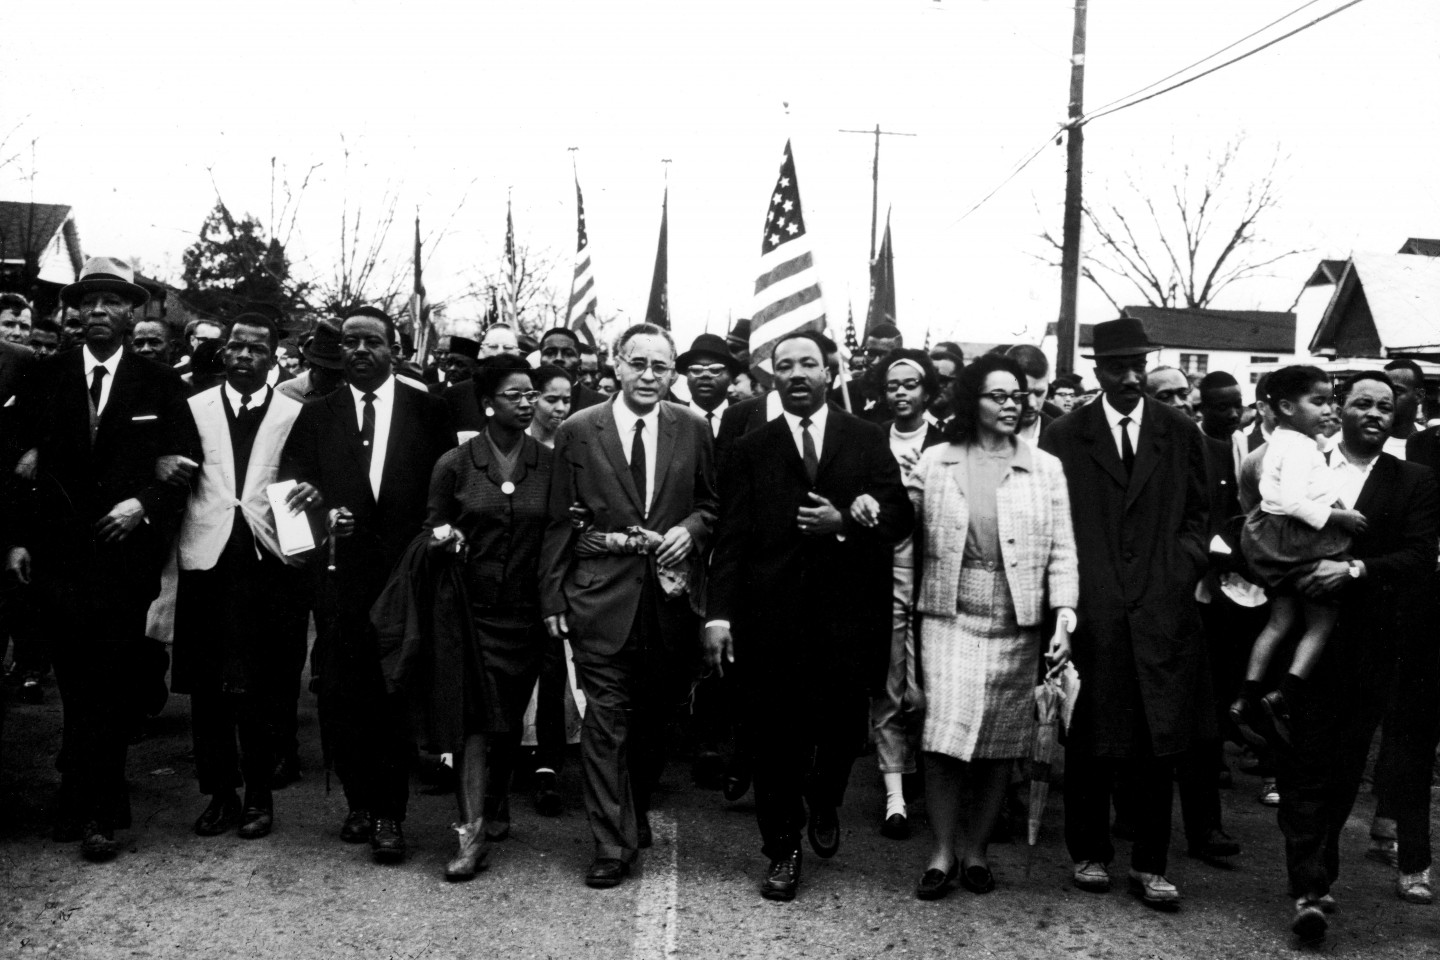 Martin Luther King Jr. marching with a crowd of people.